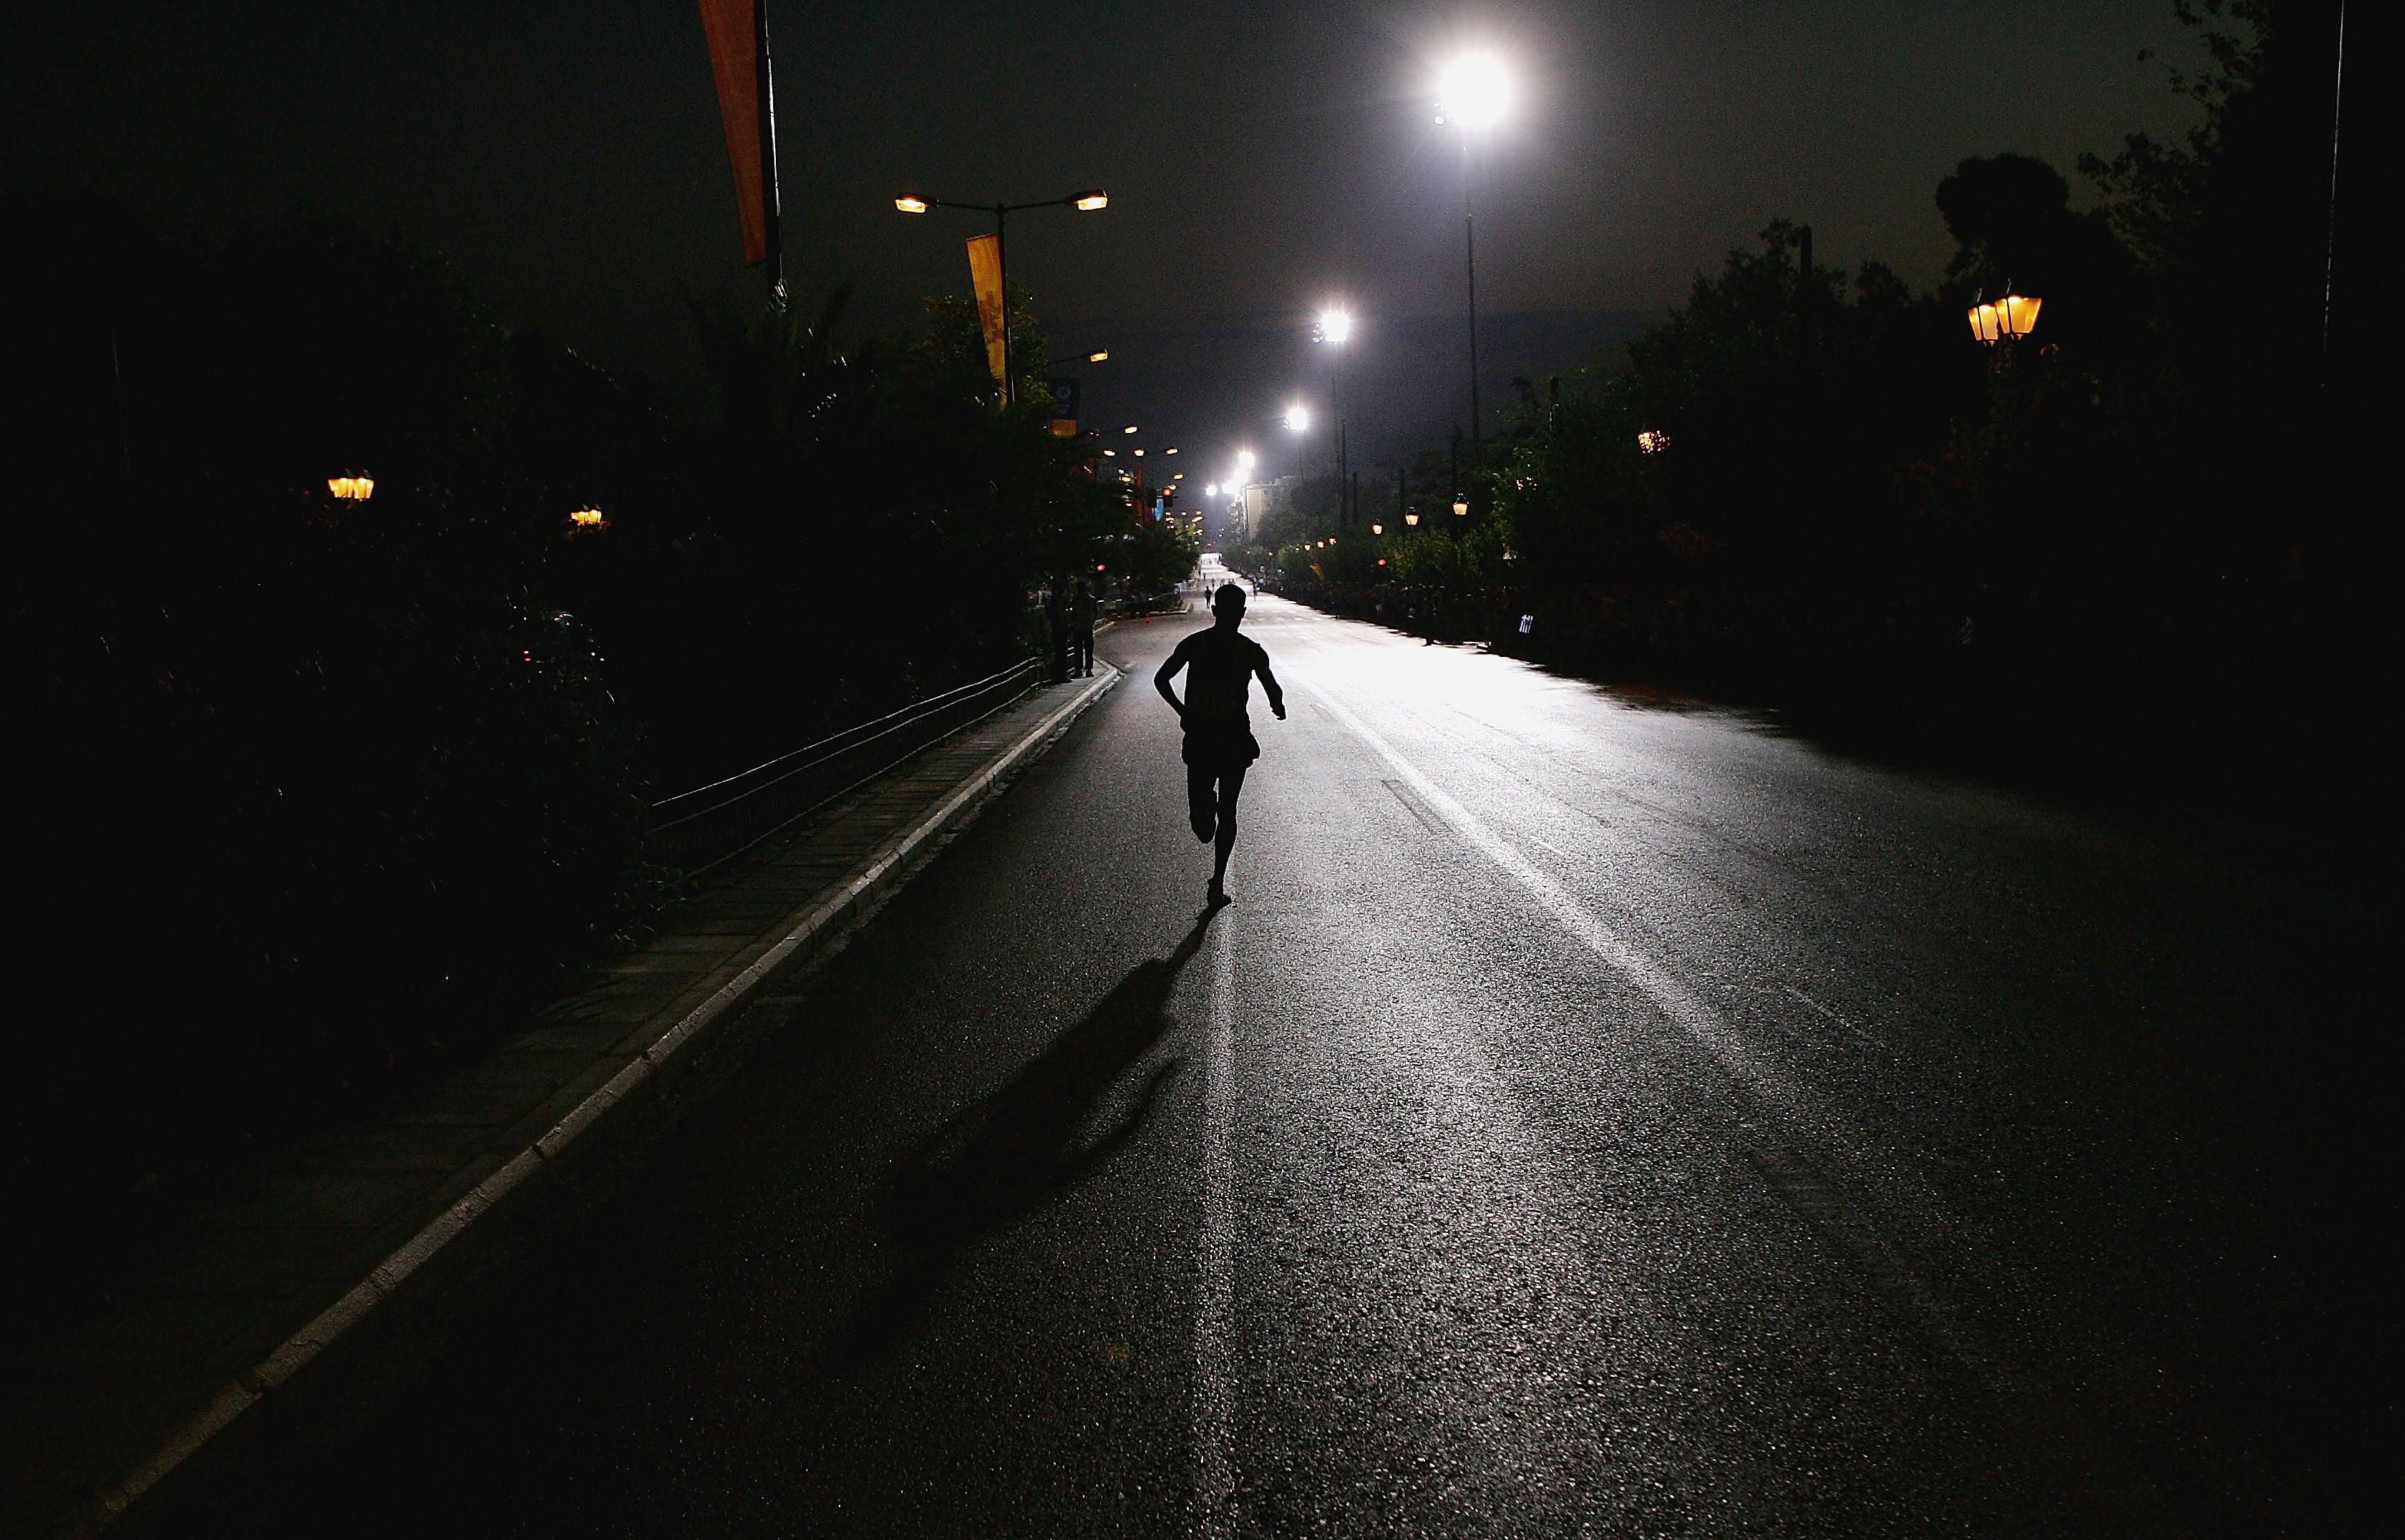 How a lifetime of running changes you